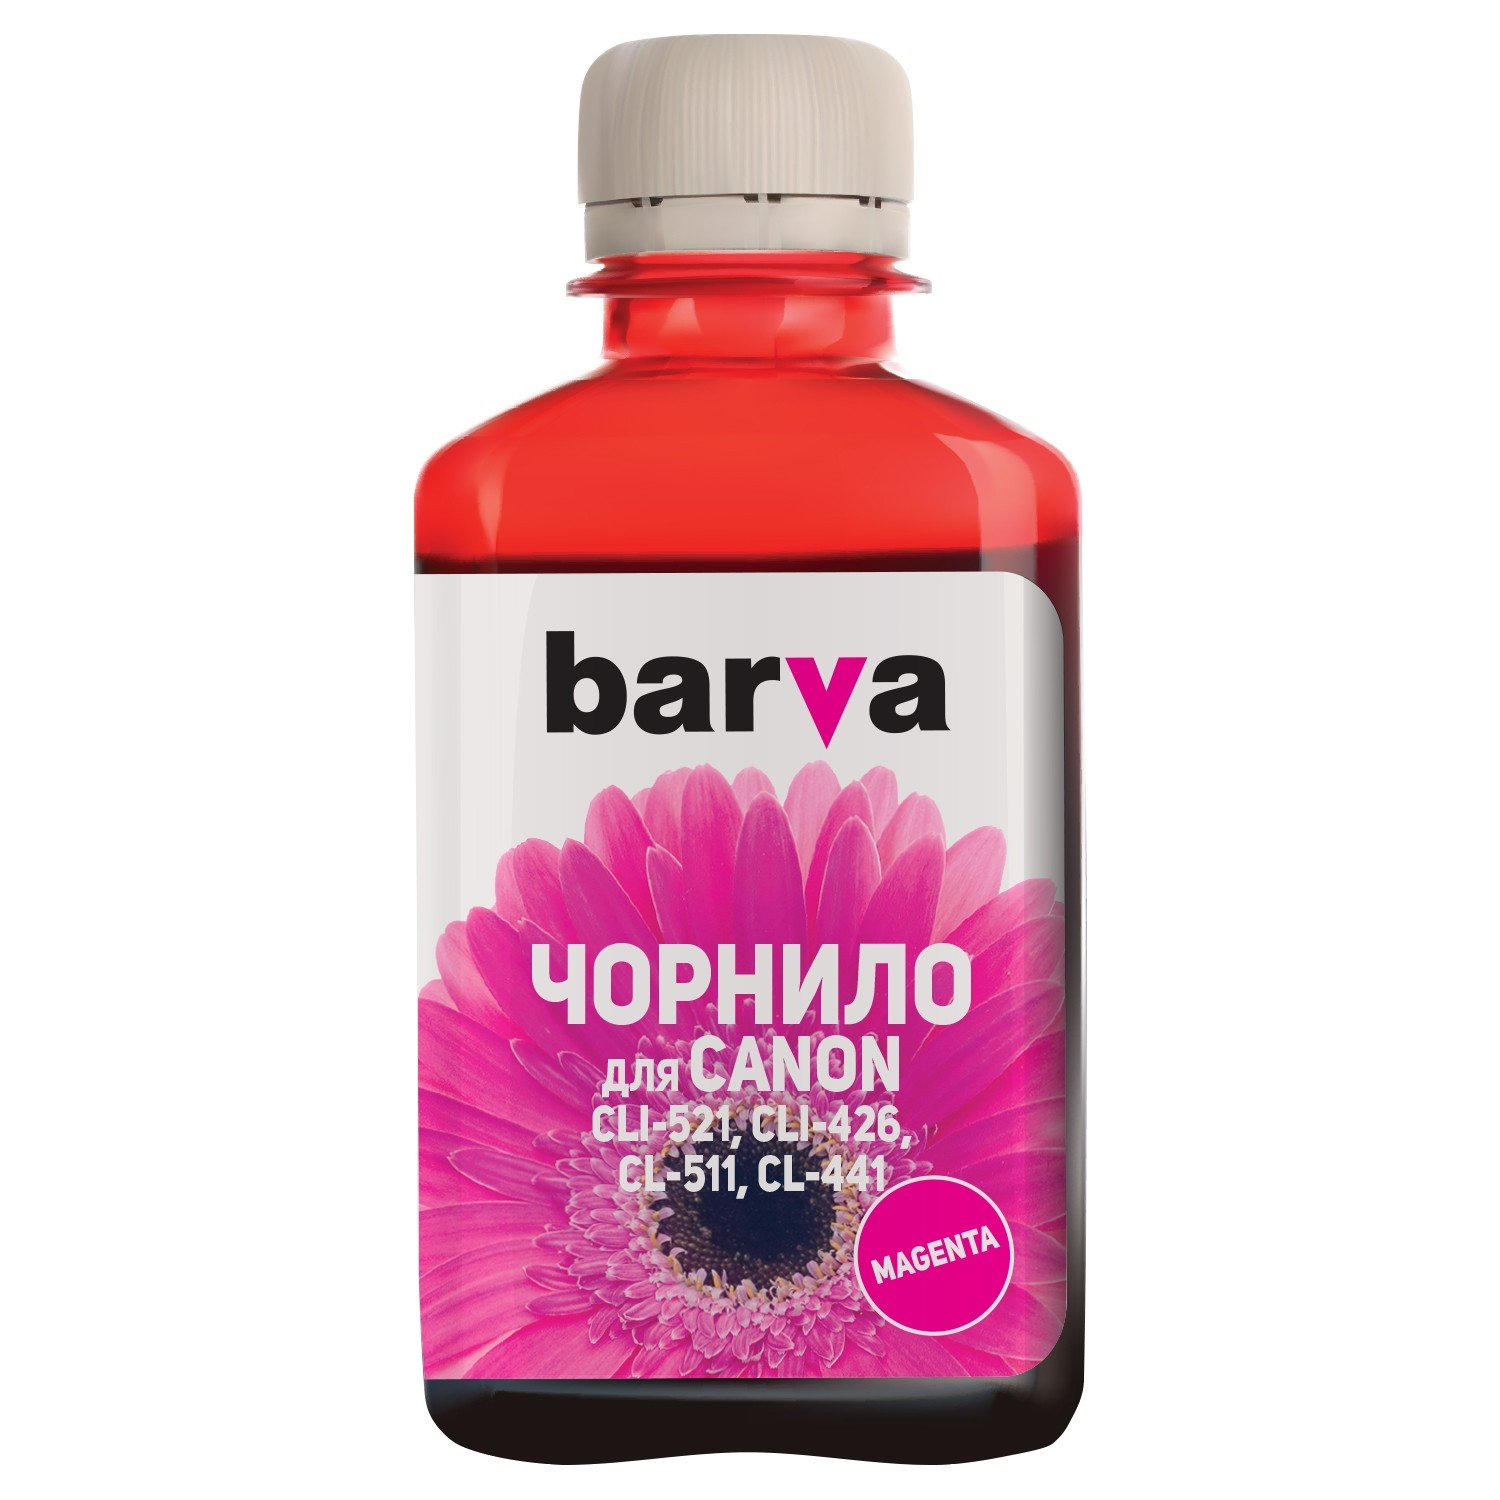 ЧЕРНИЛА CANON CLI 521/CL 511 MG2140/MP230/MP250/MP280 MAGENTA 180 г C521-058 BARVA